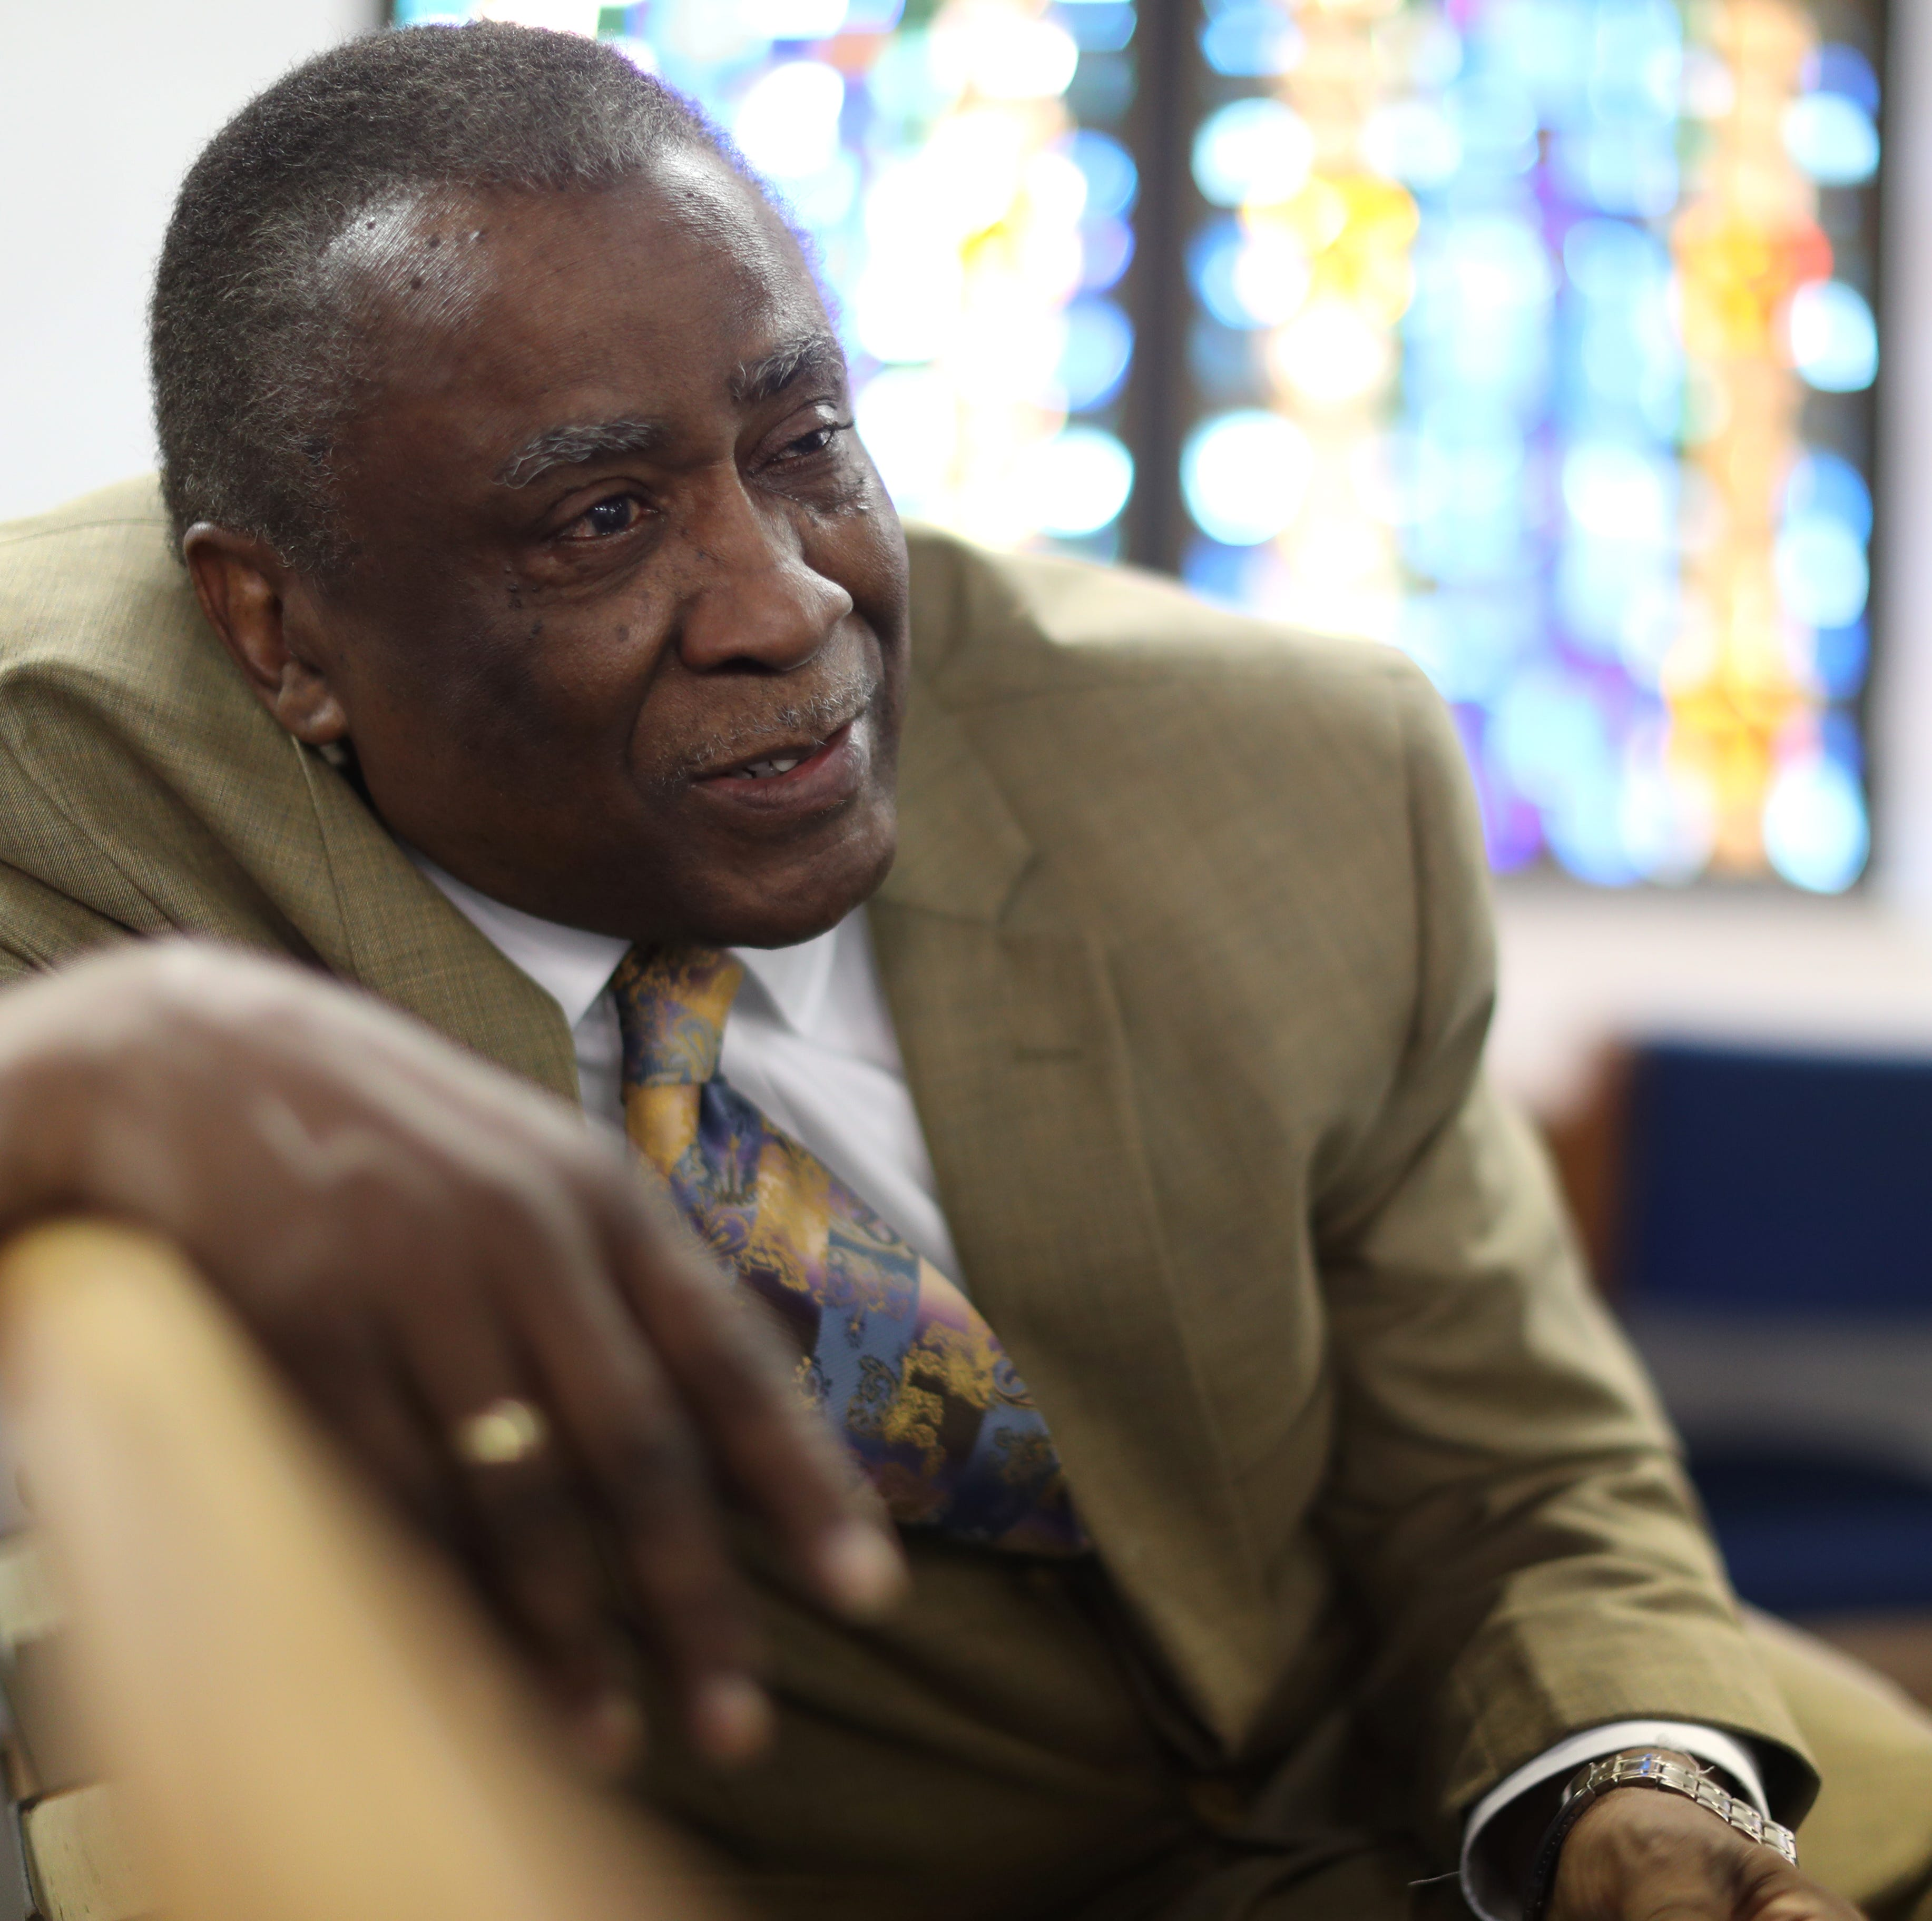 Rev. Ernest Ferrell retires at Urban League, leaving a long legacy